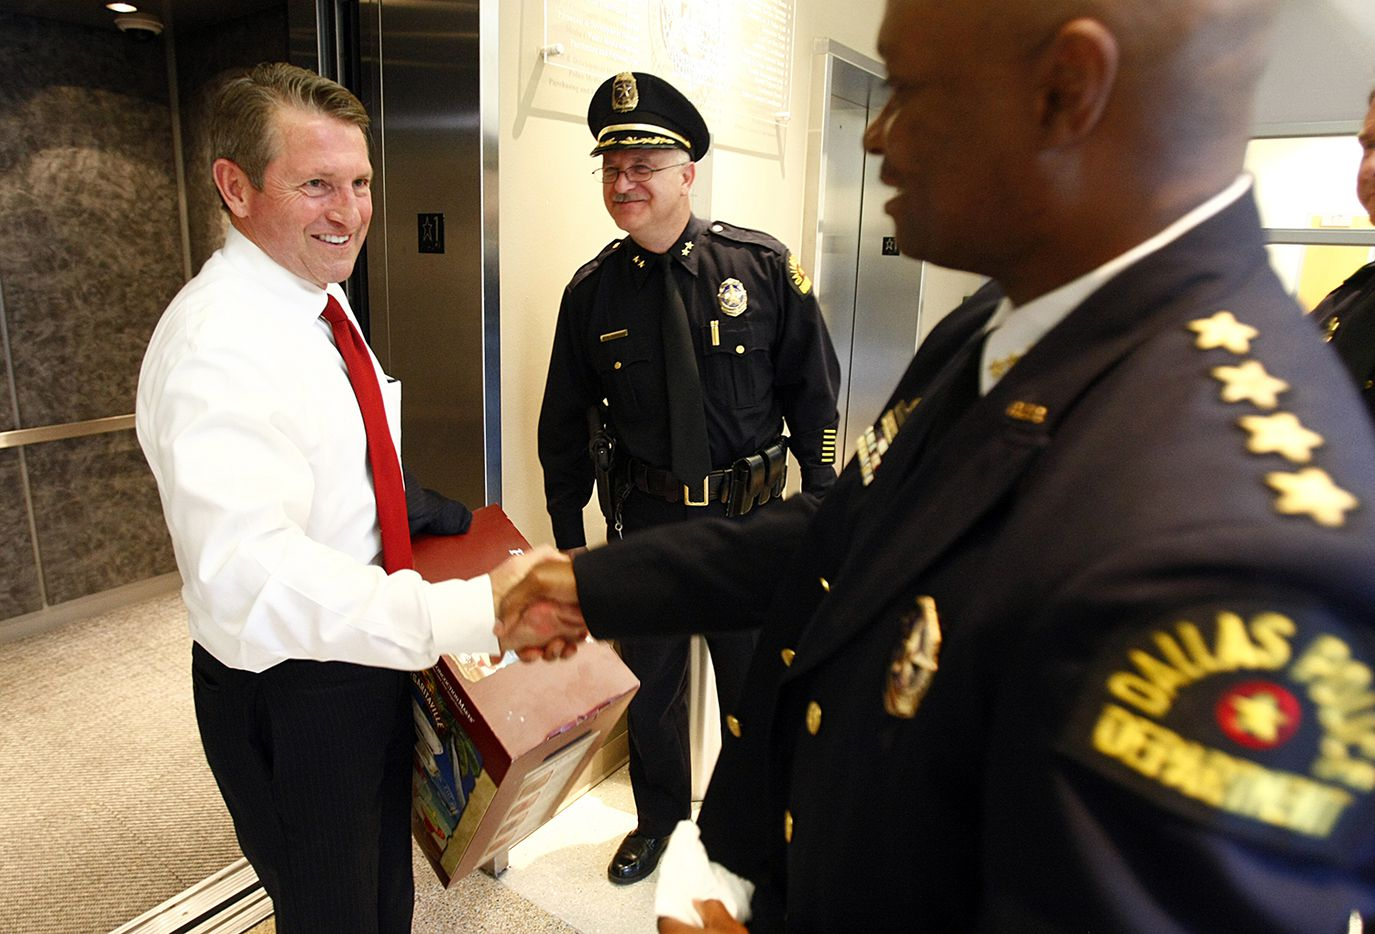 On his way of out of police headquarters for the last time, outgoing Dallas police chief David Kunkle (left) ran into newly sworn police chief David Brown (right) as he stepped off the elevator. The two shook hands, wished each other well and then parted ways - Kunkle to the parking garage, Brown to the police chief's office, Tuesday, May 4, 2010. Kunkle was carrying a margarita machine, a parting gift from a staff member. In background, center, is Assistant Police Chief Daniel Garcia, who was one of the finalists for Kunkle's job.